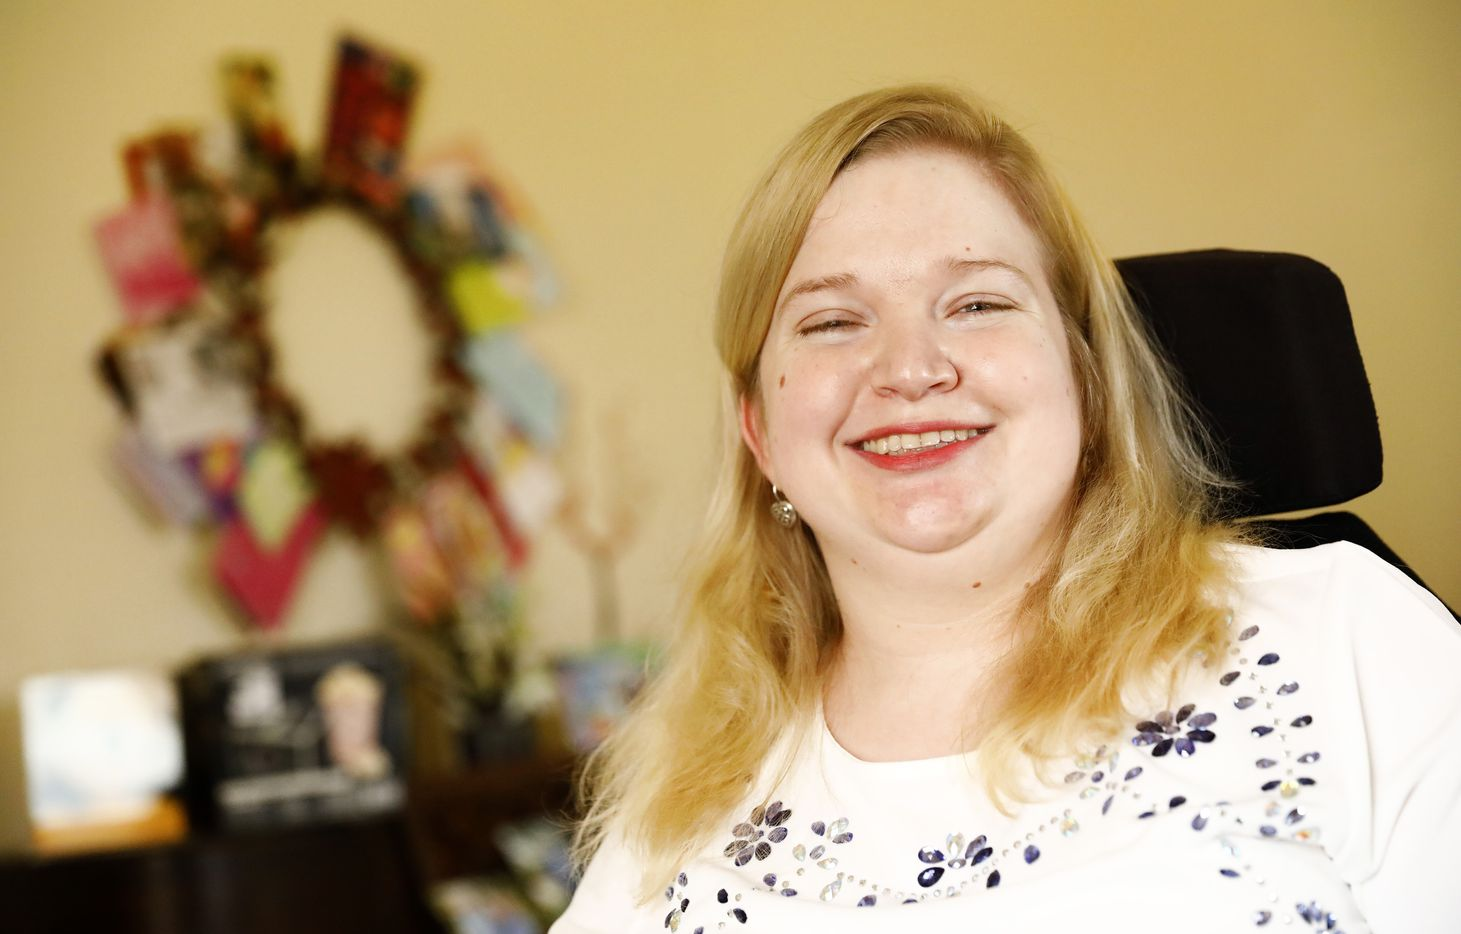 Jessica Lukefahr of Kingsville was denied a standing wheelchair, which helps her hold a voluntary job at the Corpus Christi Museum and relieves pain.